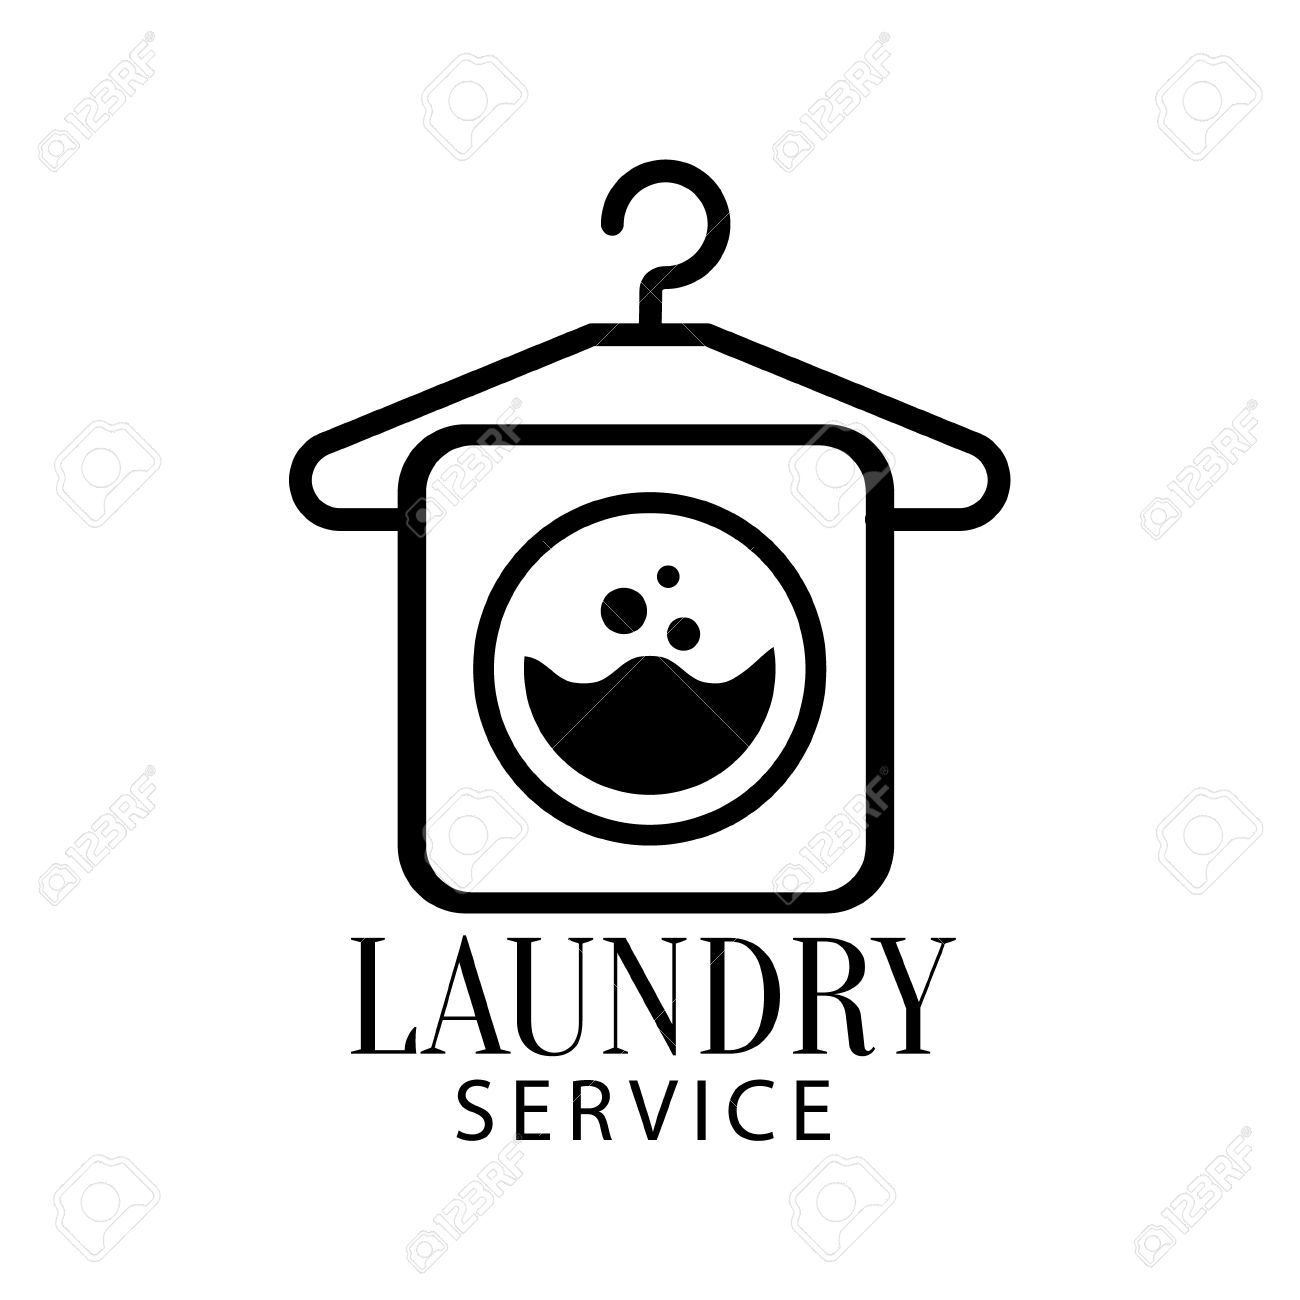 Laundry Clipart Black And White